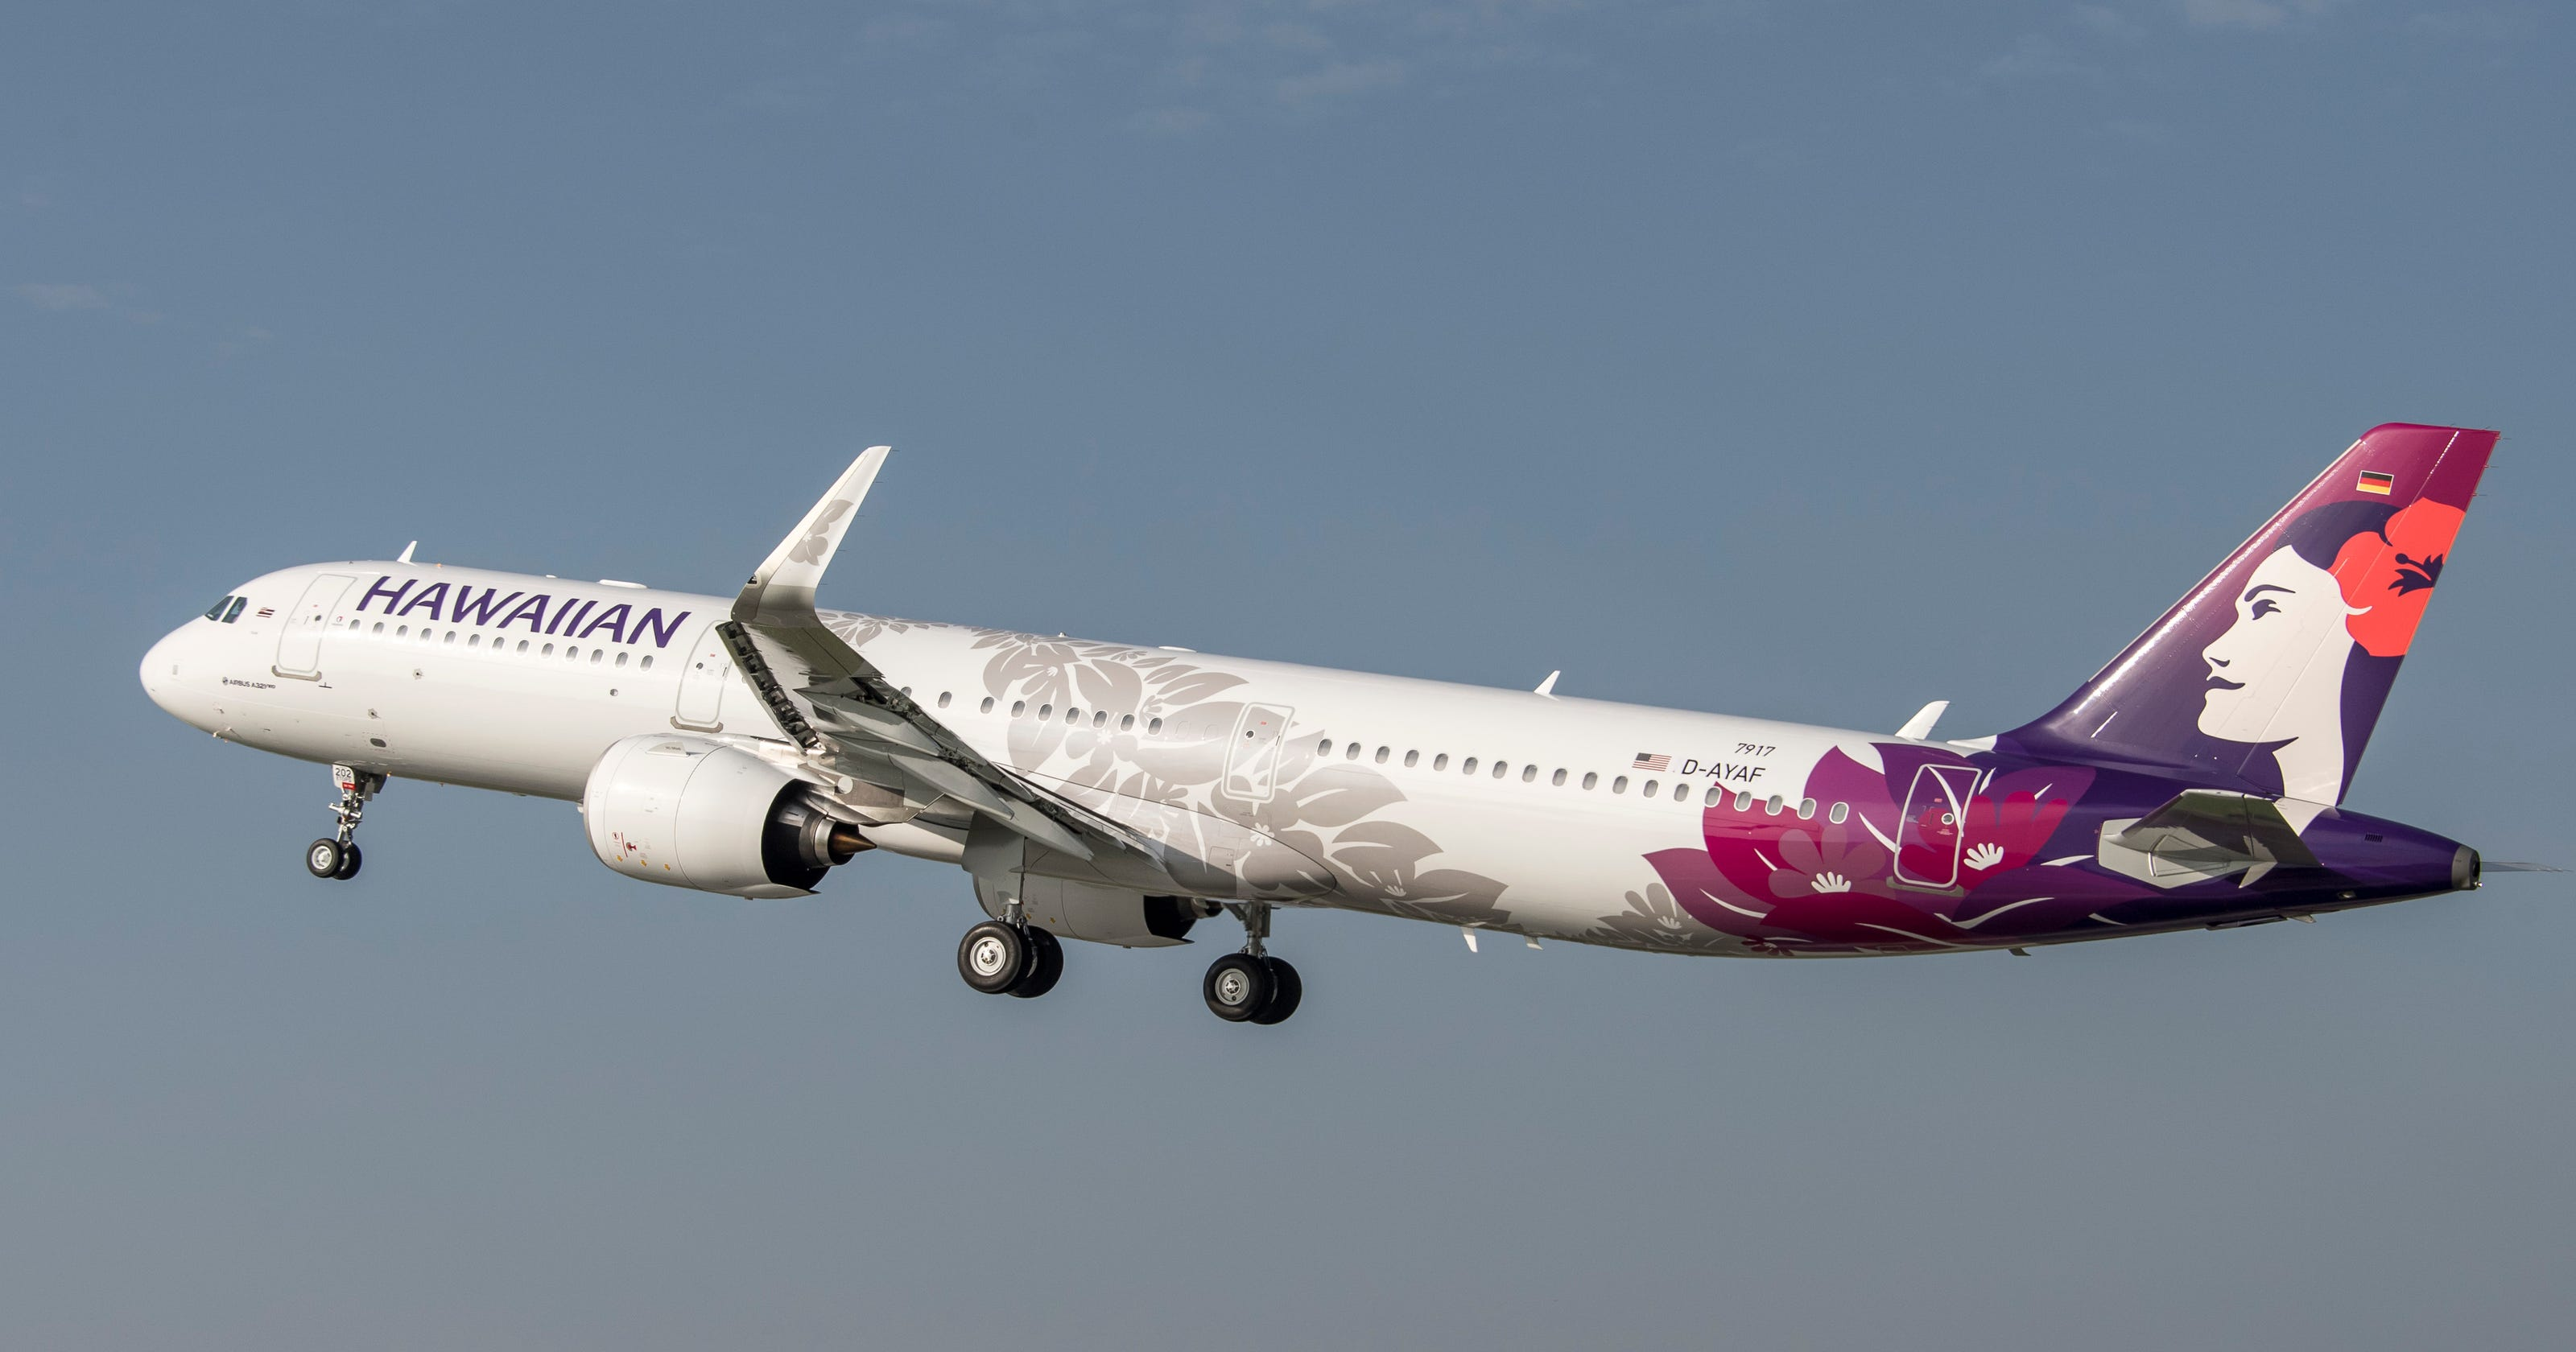 qa hawaiian ready to compete with southwest in hawaii ceo says